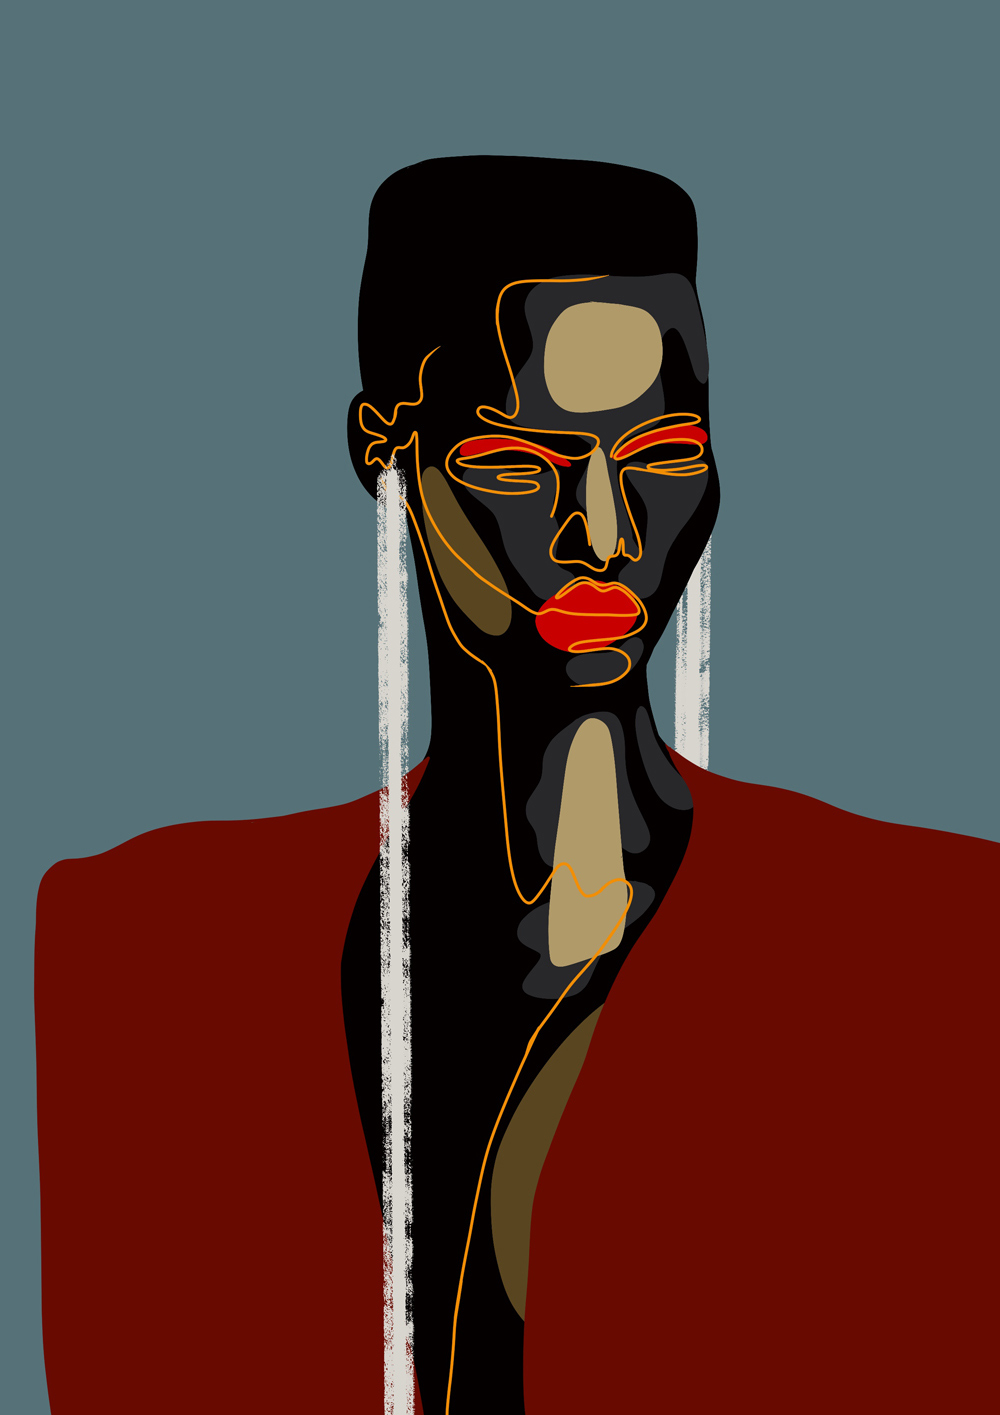 Naledi Tshegofatso Modupi contemporary South African visual artist illustrator